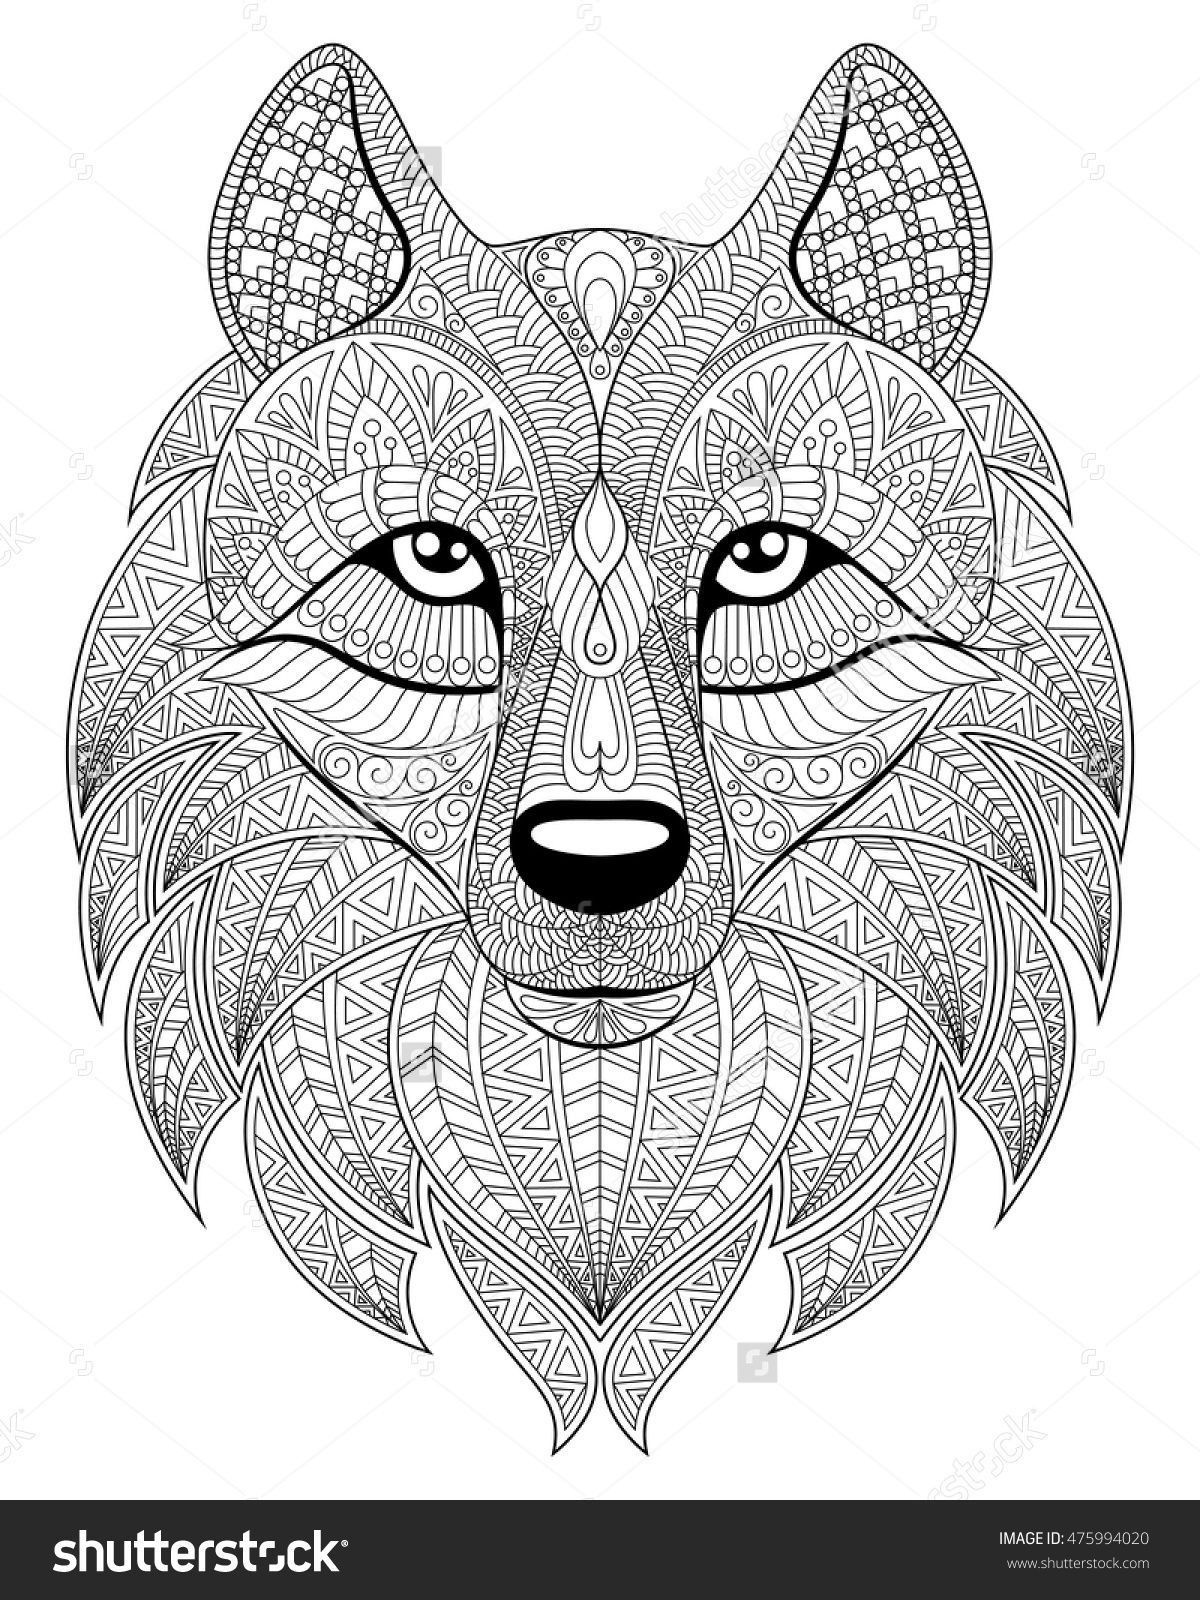 Pin On Kids Coloring Pages